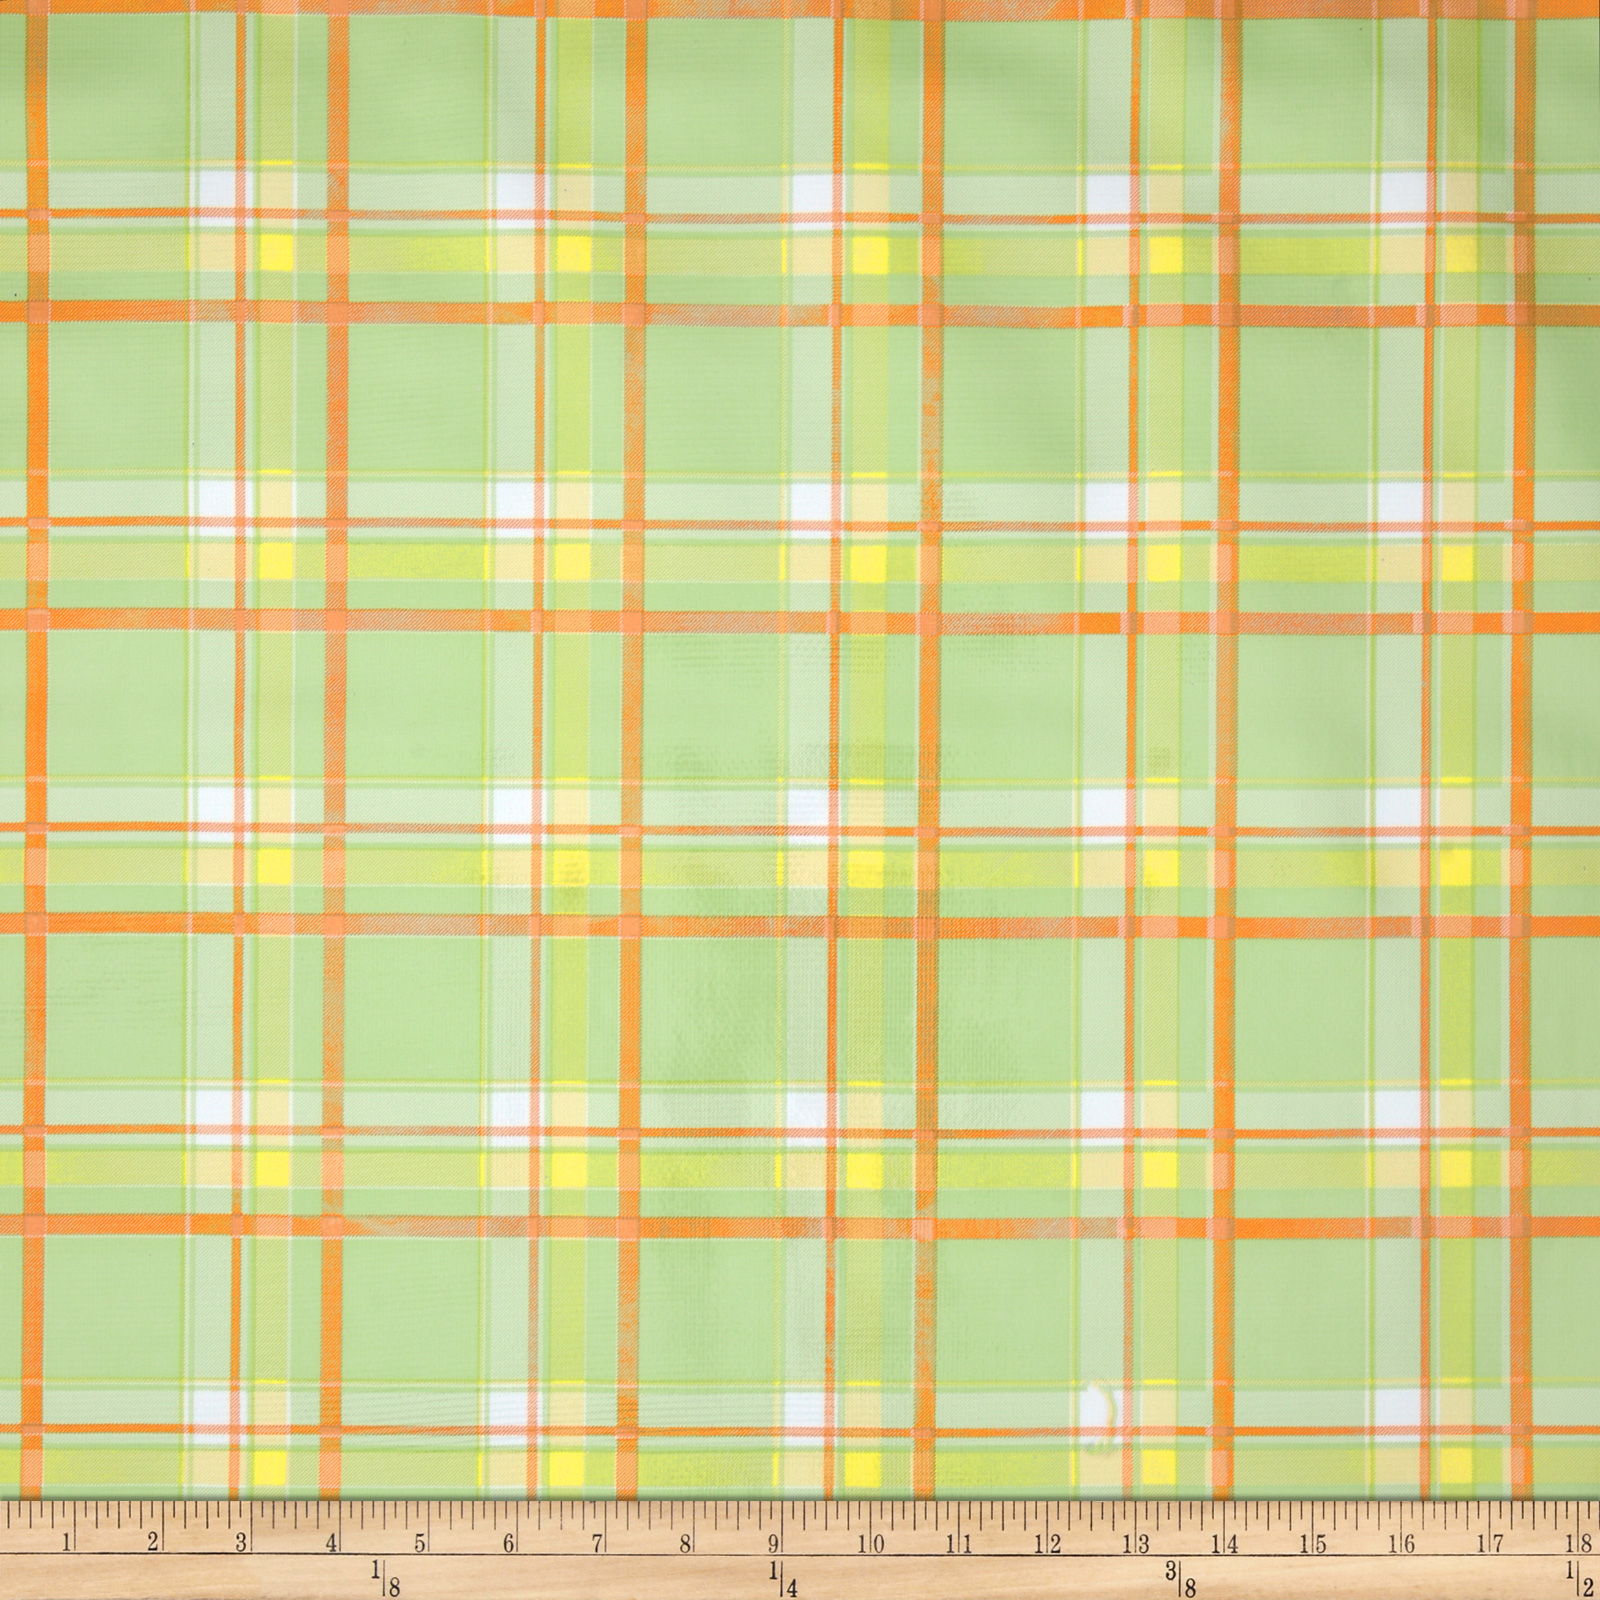 Oilcloth Scottish Plaid Green Fabric by Oilcloth International in USA